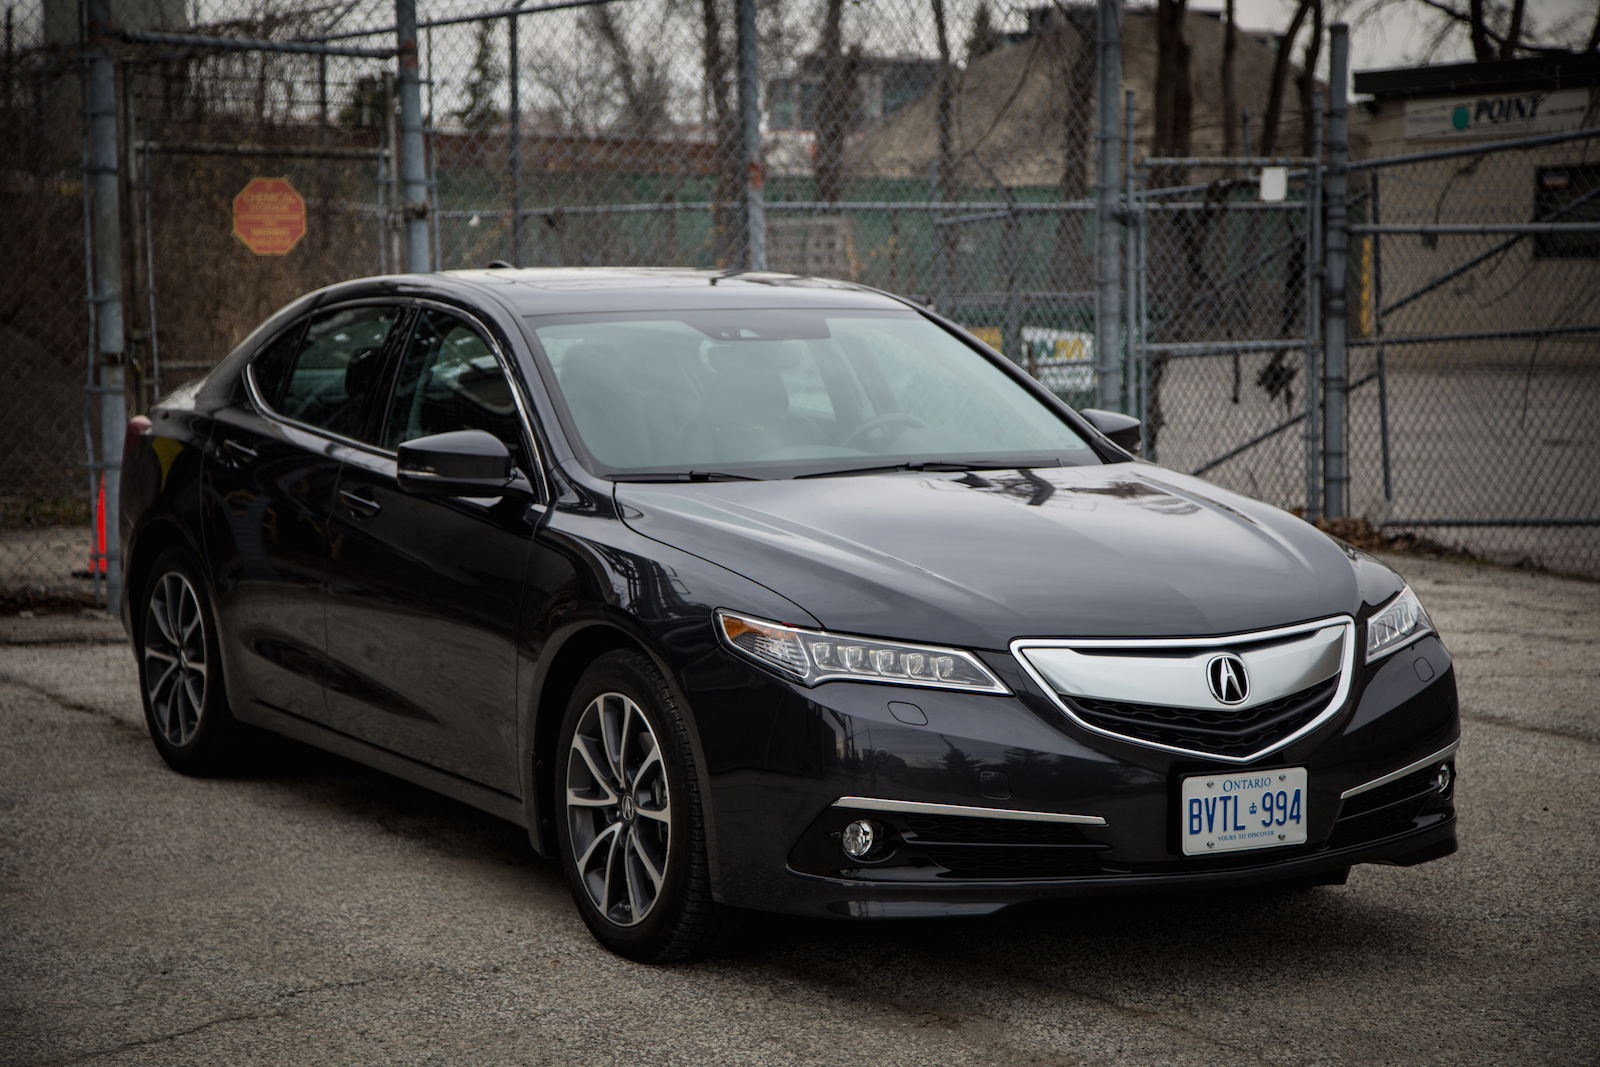 Simple Review 2015 Acura TLX V6 Elite SHAWD  Canadian Auto Review